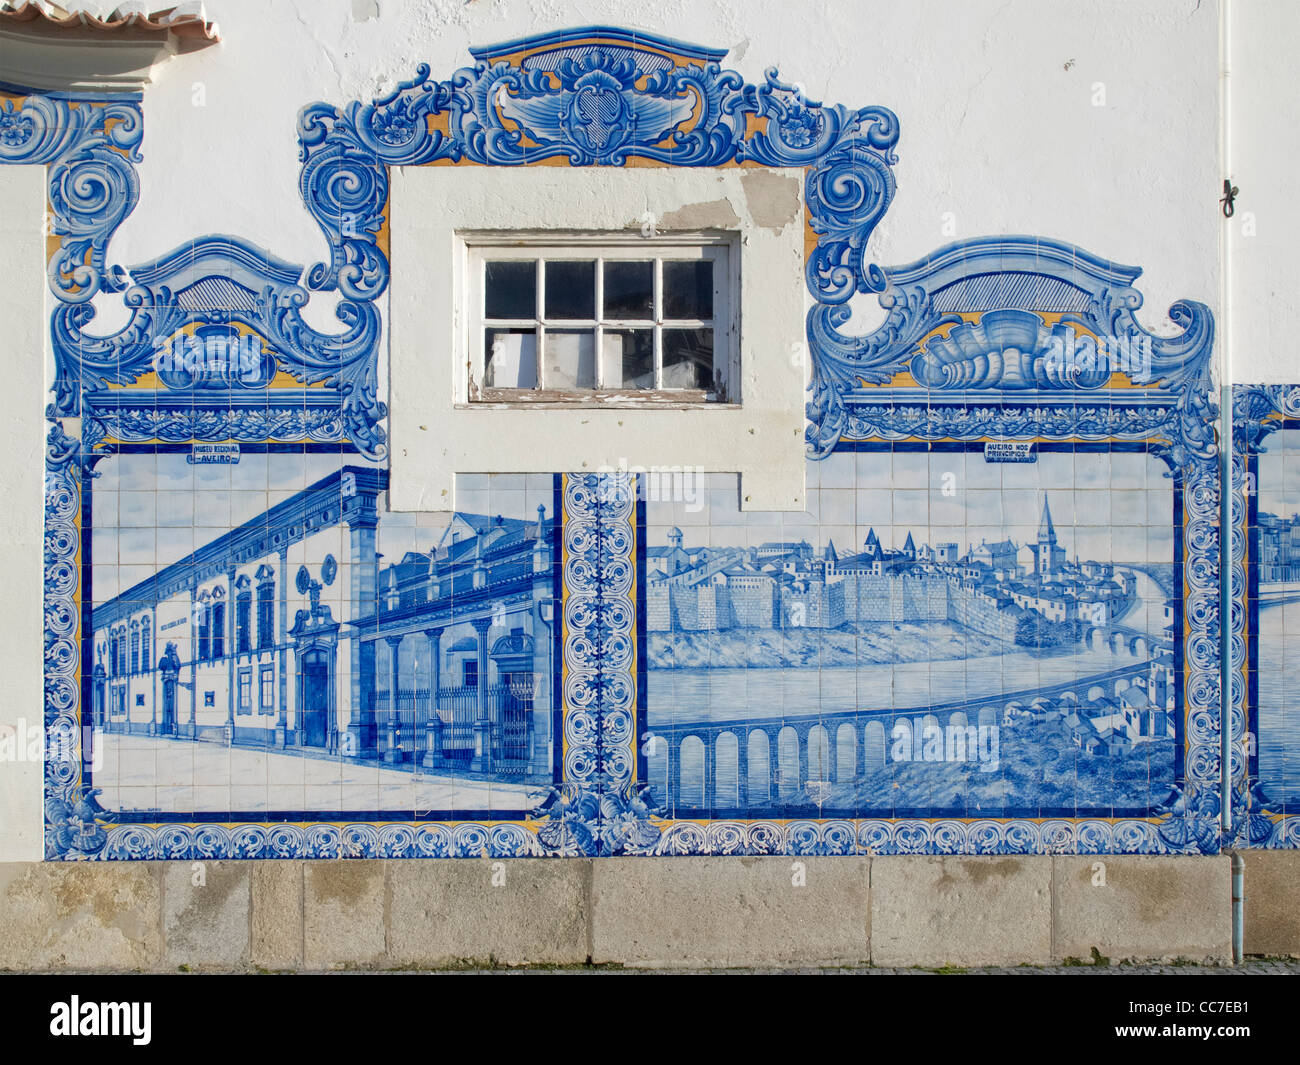 Railway station building with 'azulejos' tiles in Aveiro, Portugal - Stock Image